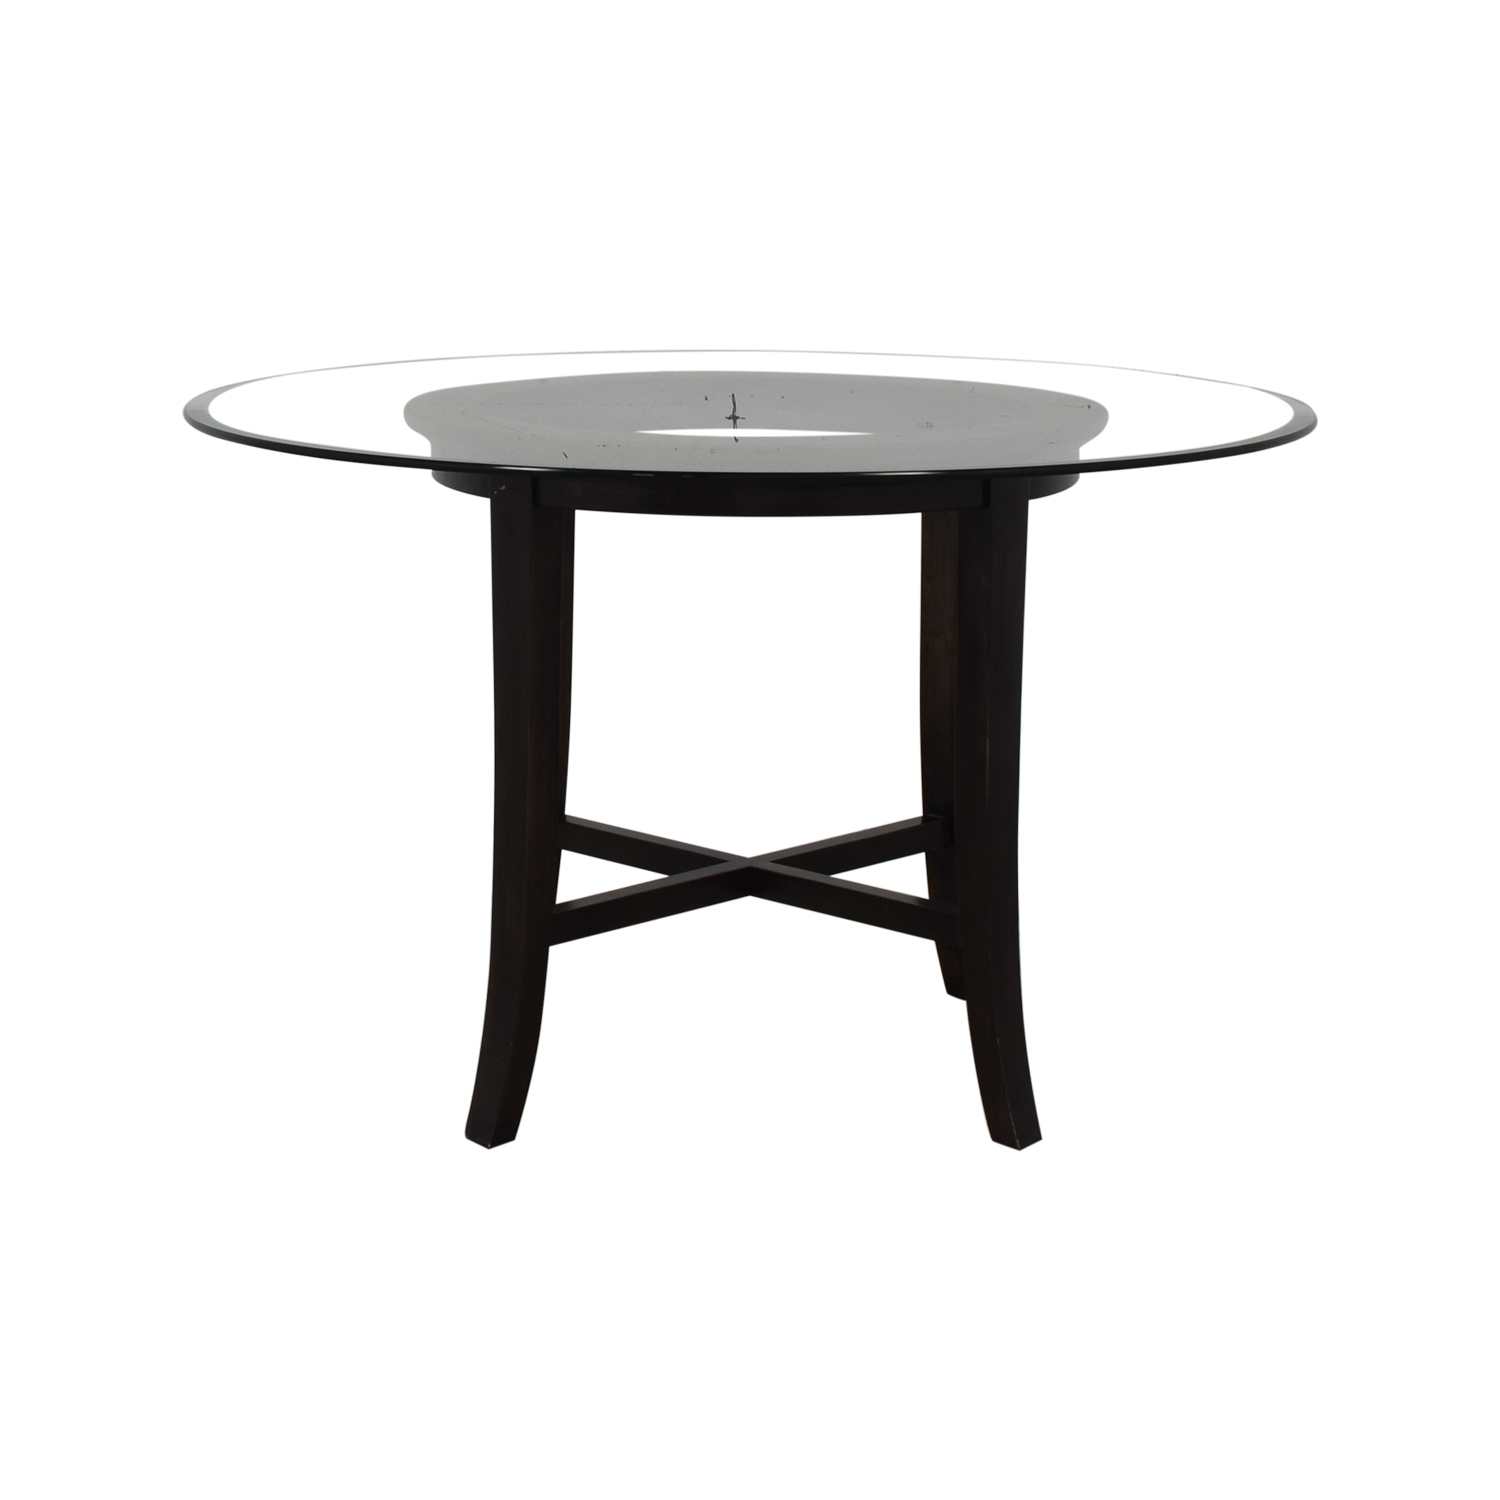 Crate & Barrel Halo Round Glass Dining Table / Dinner Tables